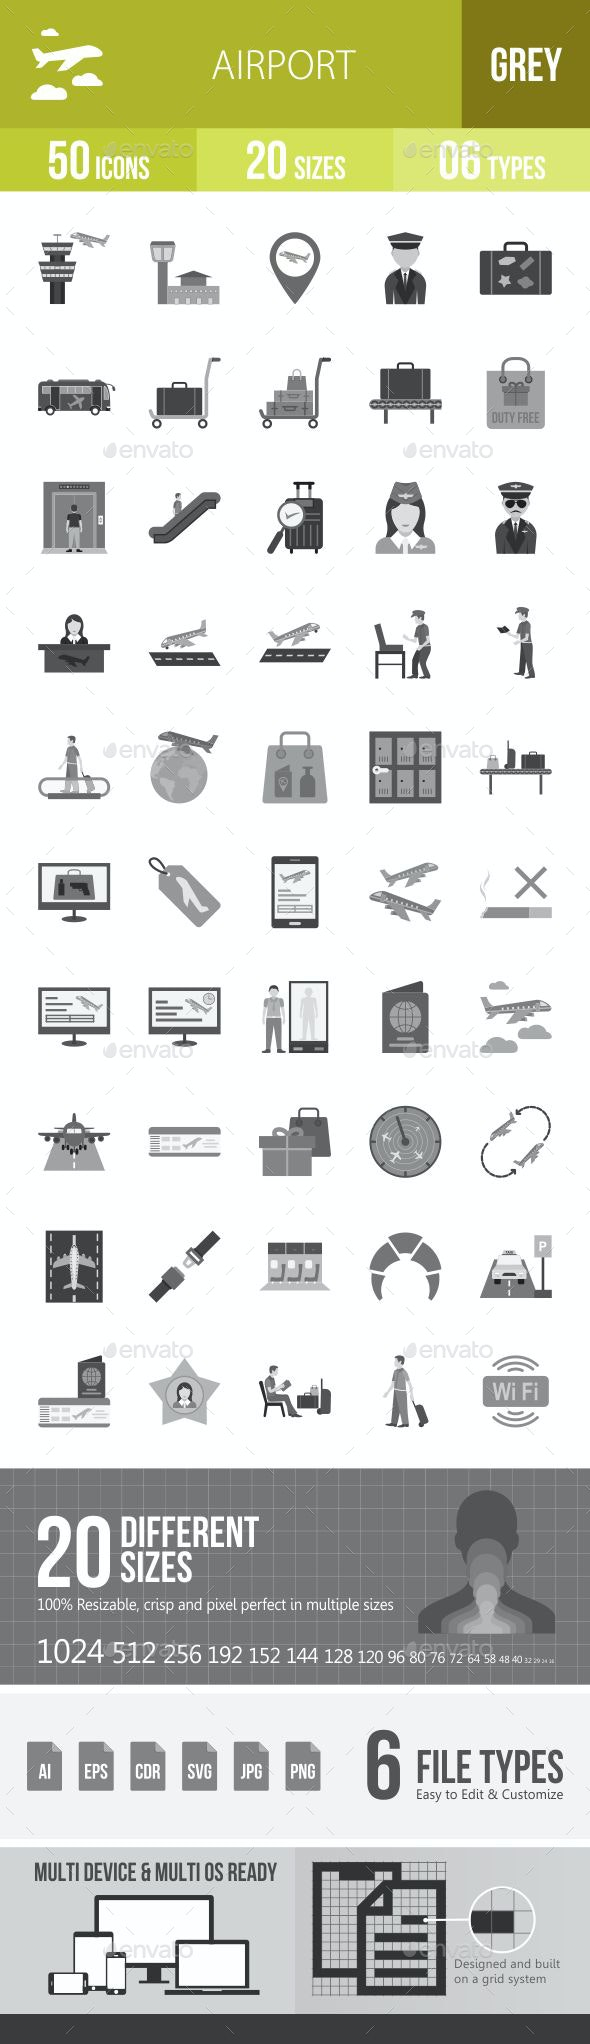 Airport Greyscale Icons - Icons